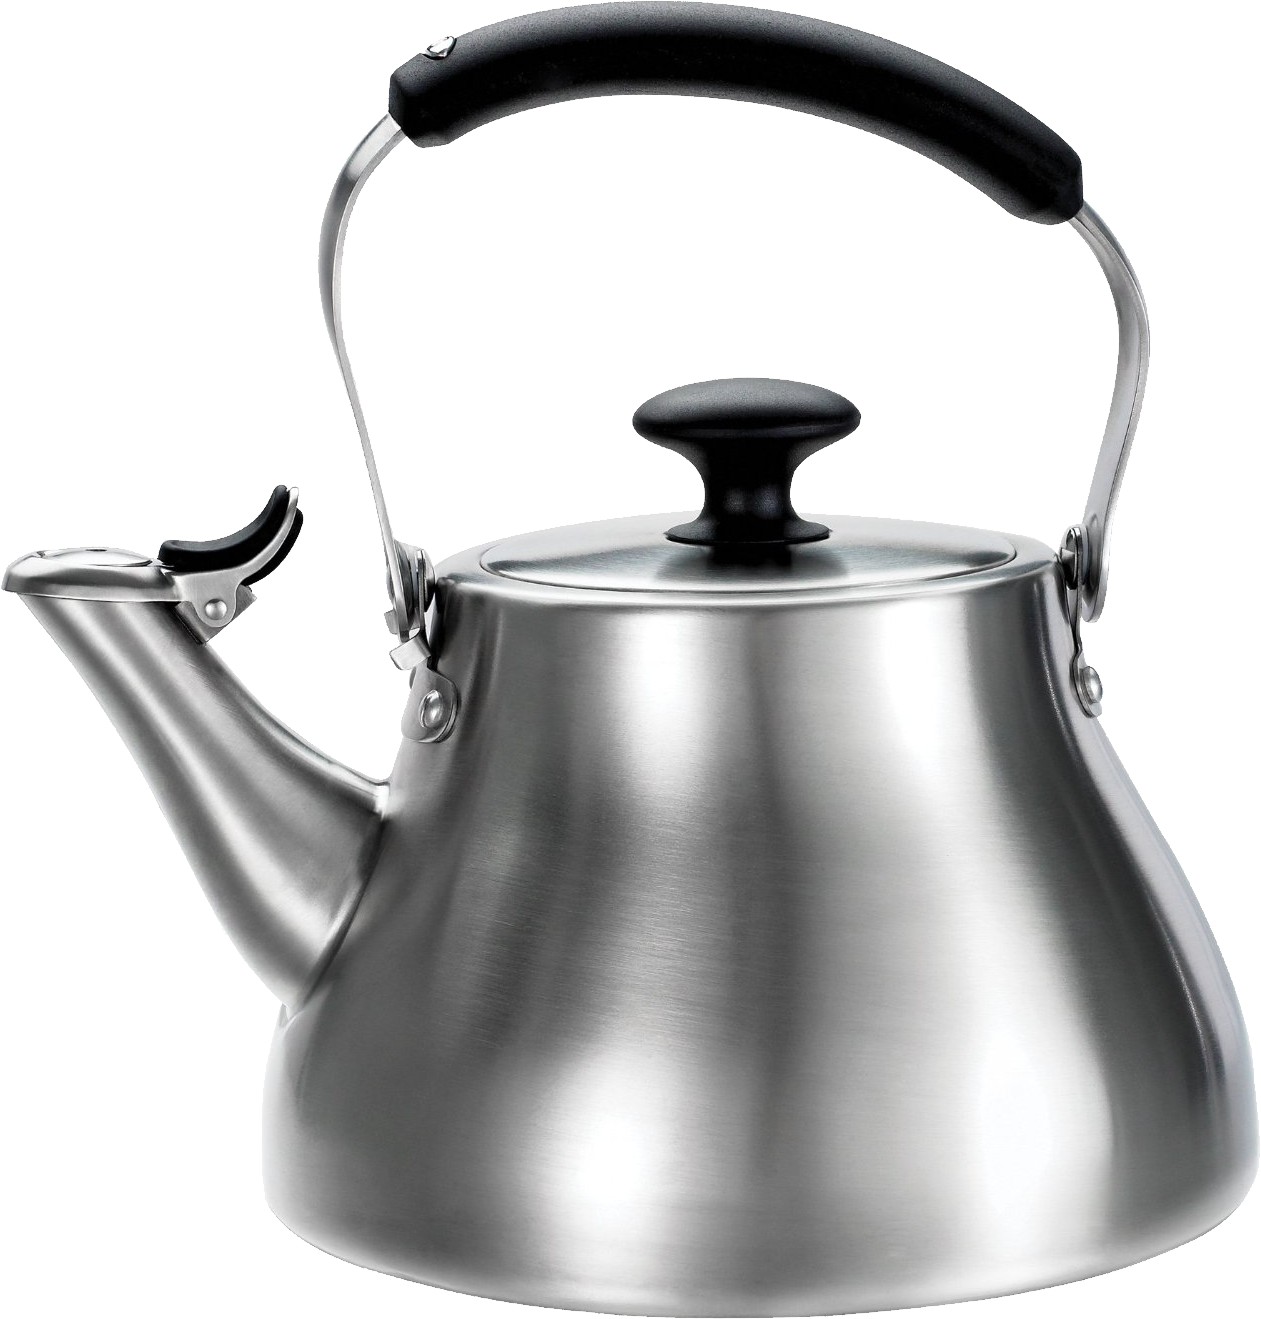 Kettle PNG image - Kettle PNG